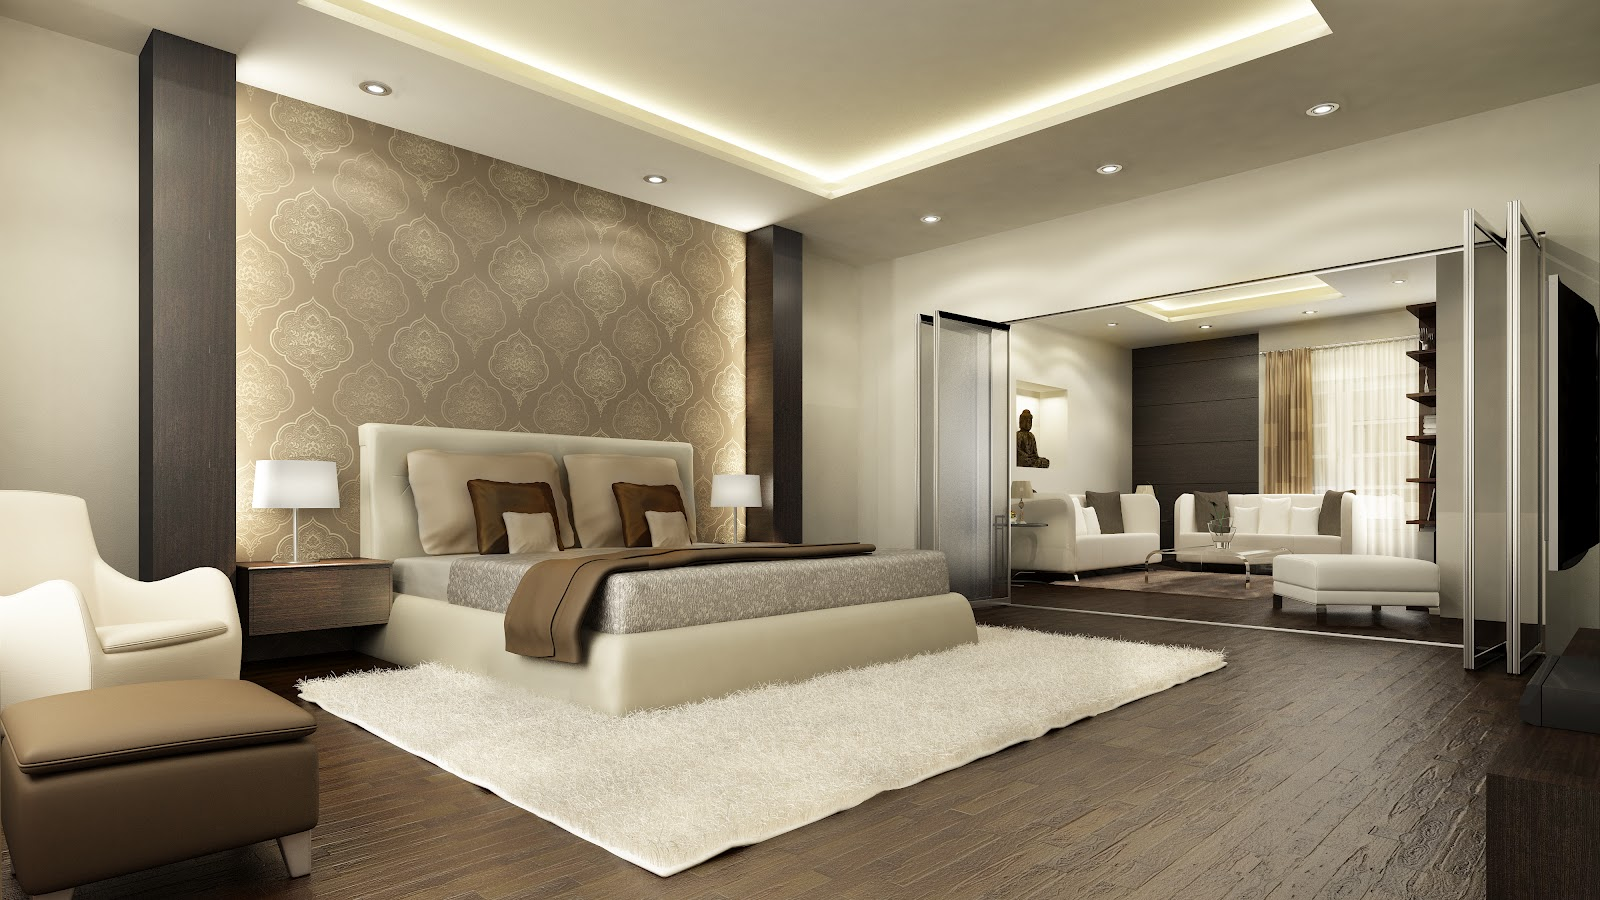 Modern Master Bedroom Buy Luxury Property Flats Homes For Sale Pioneerurban In